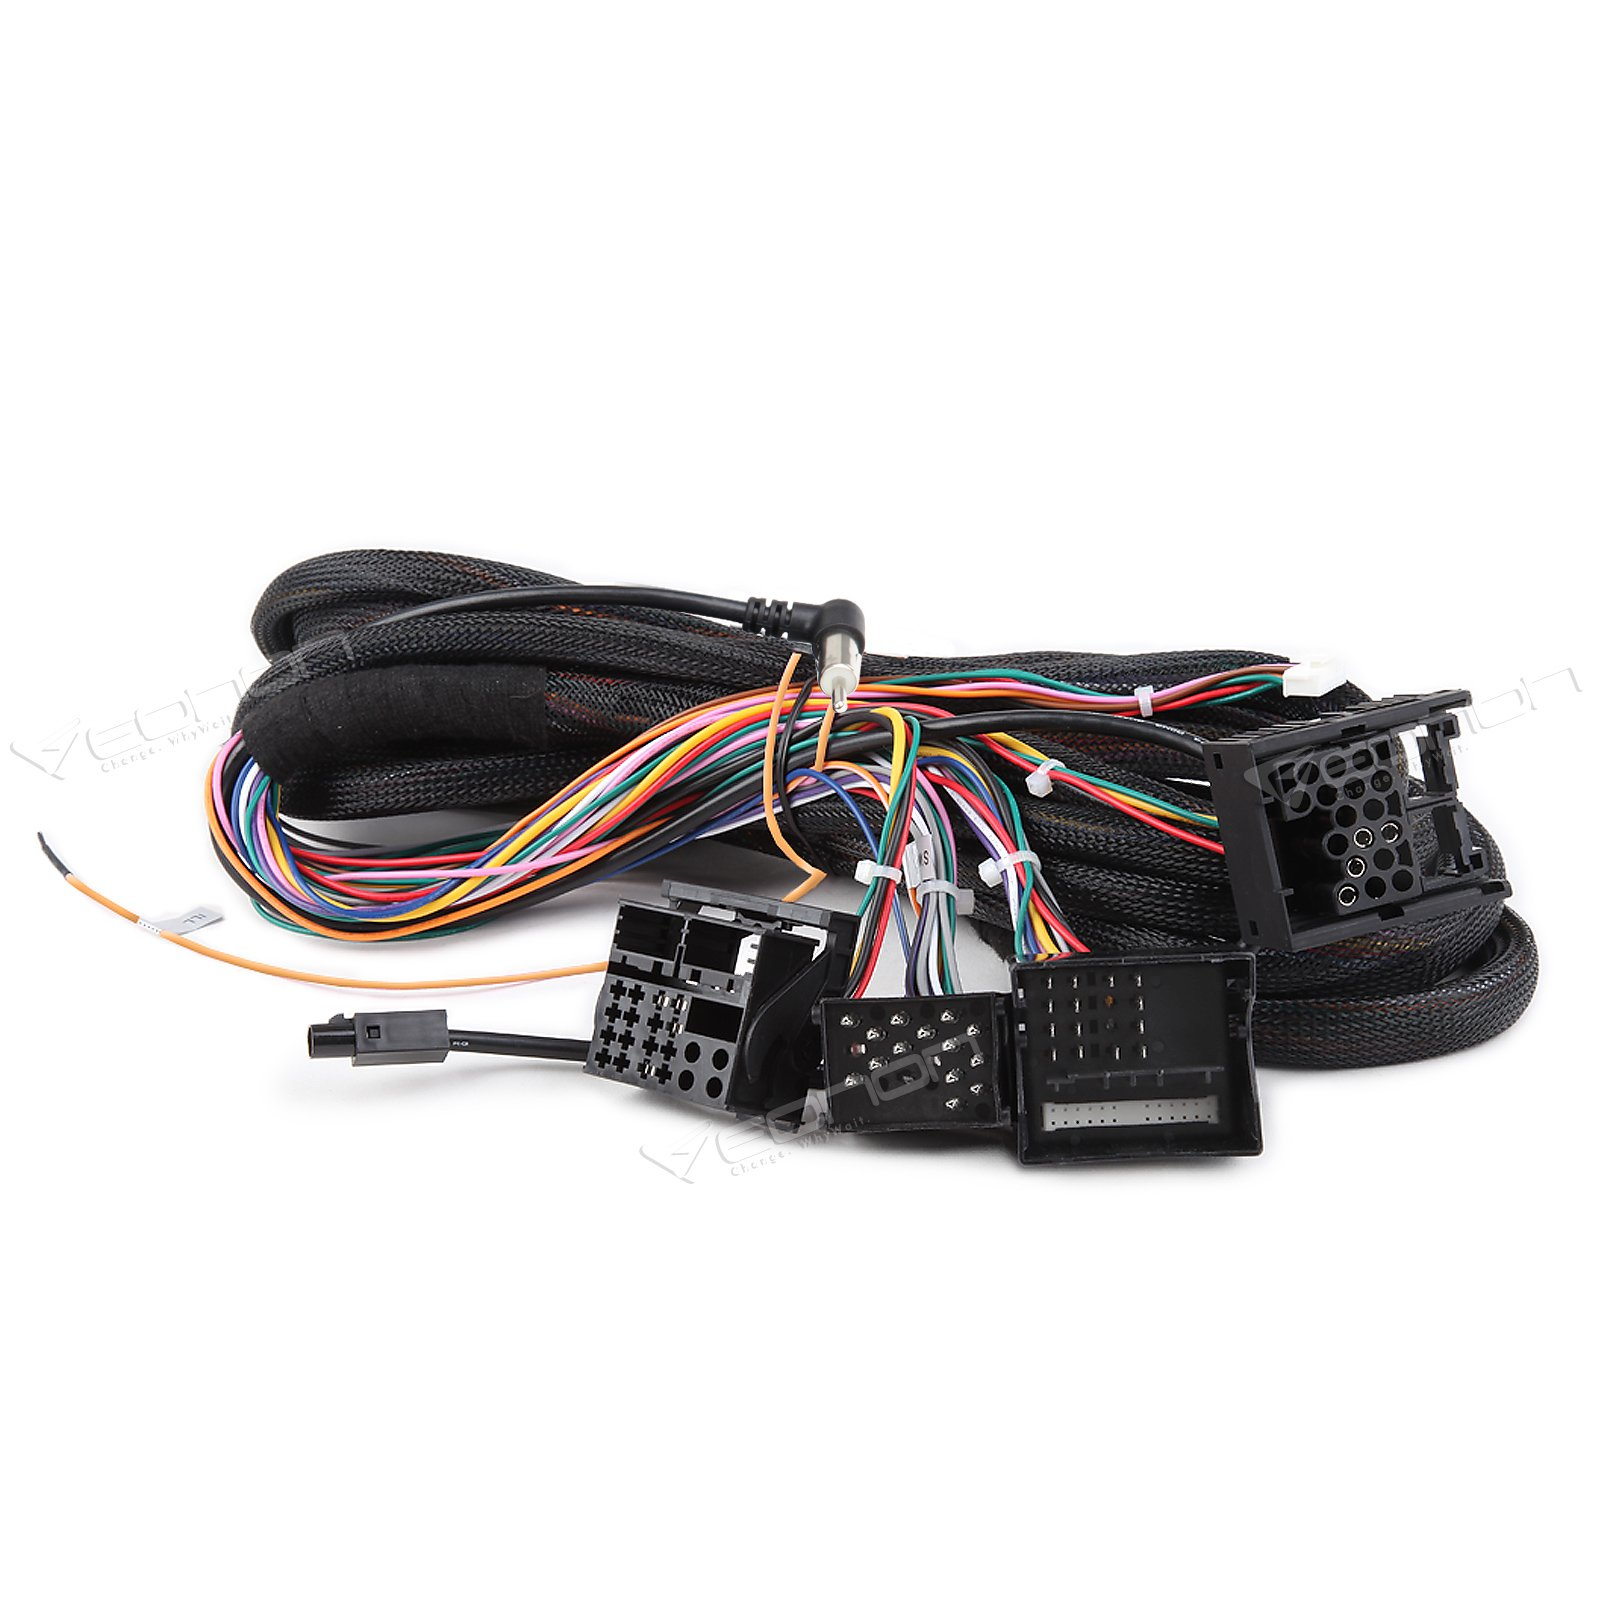 Buy Eonon A0577 Extended Installation Wiring Harness for Eonon ... on bmw e46 speaker wiring, engine wiring harness, iso wiring harness, bmw led angel eyes, bmw e30 wiring harness, bmw wiring diagrams, bmw wiring harness connectors, bmw harness to pioneer, bmw electric pump connectors,